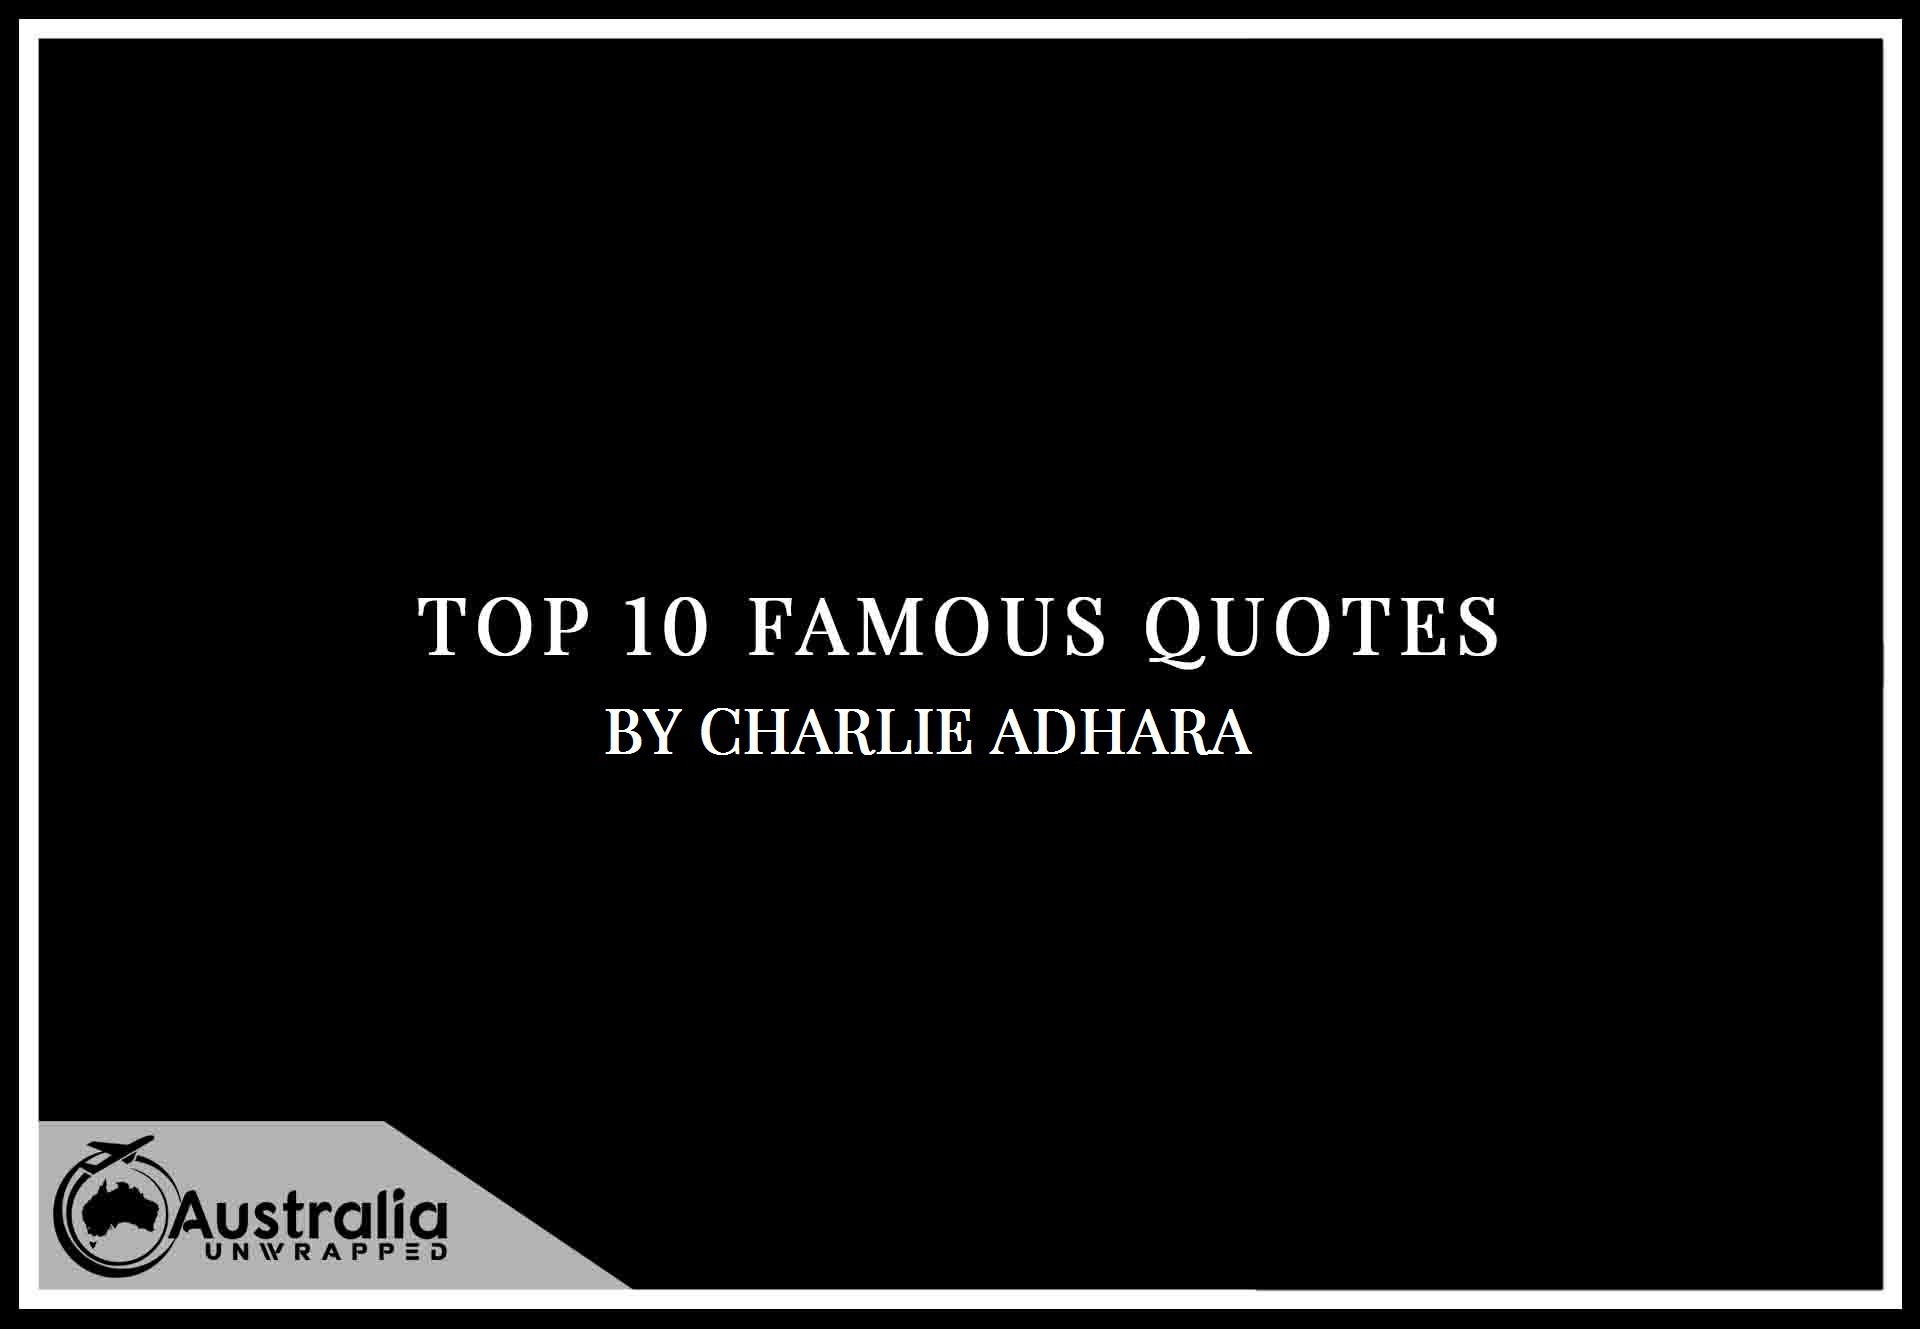 Charlie Adhara's Top 10 Popular and Famous Quotes